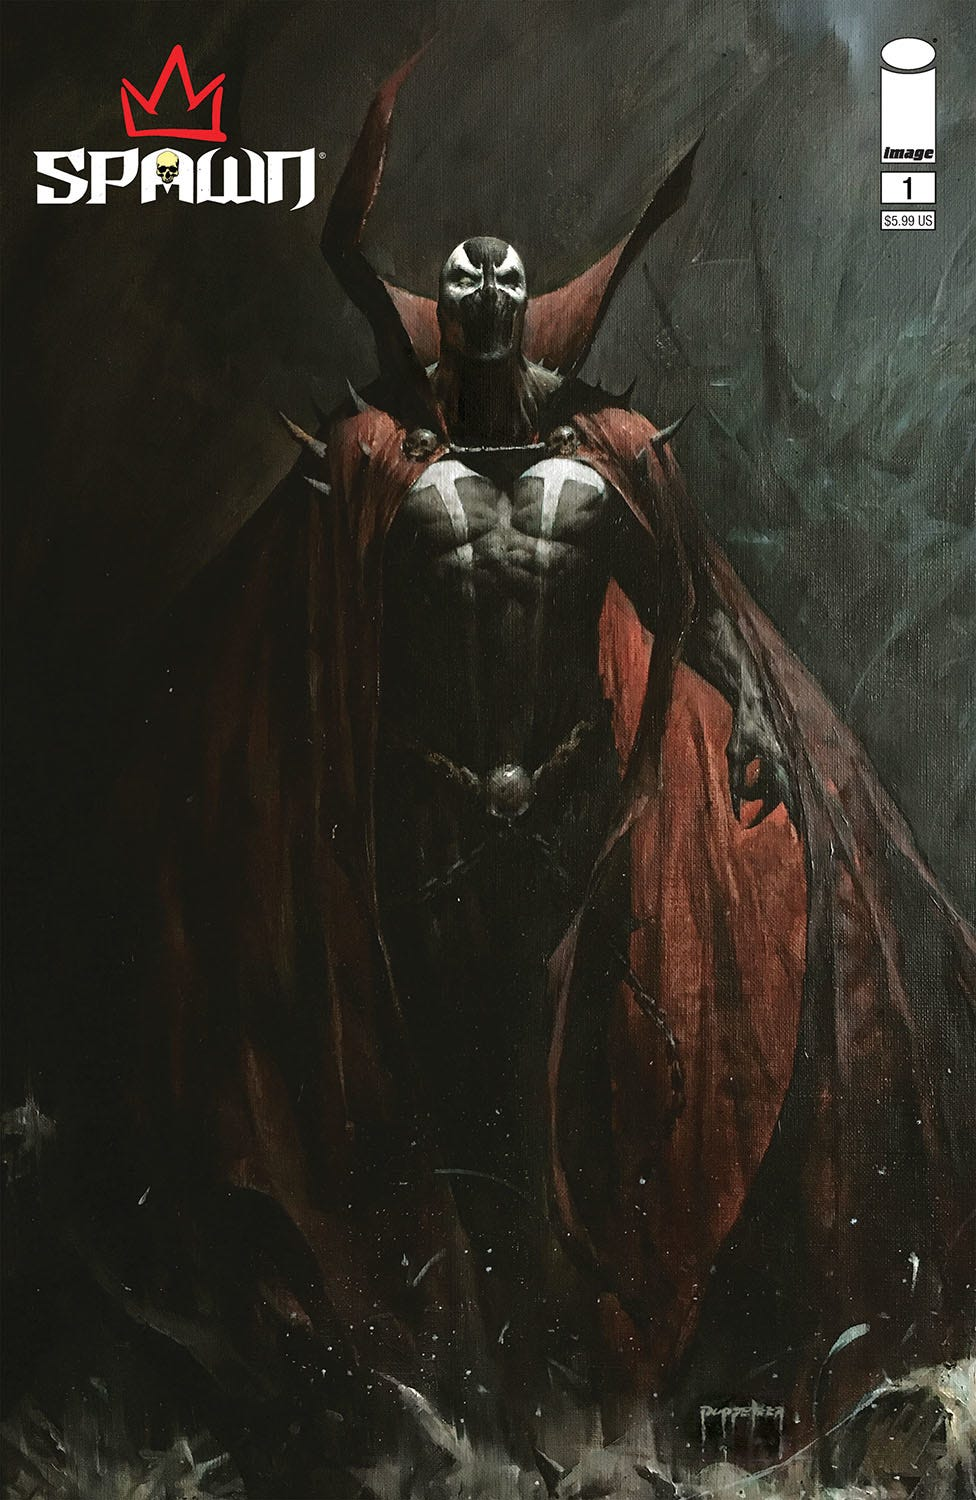 King Spawn #1 (Cover A - Lee)